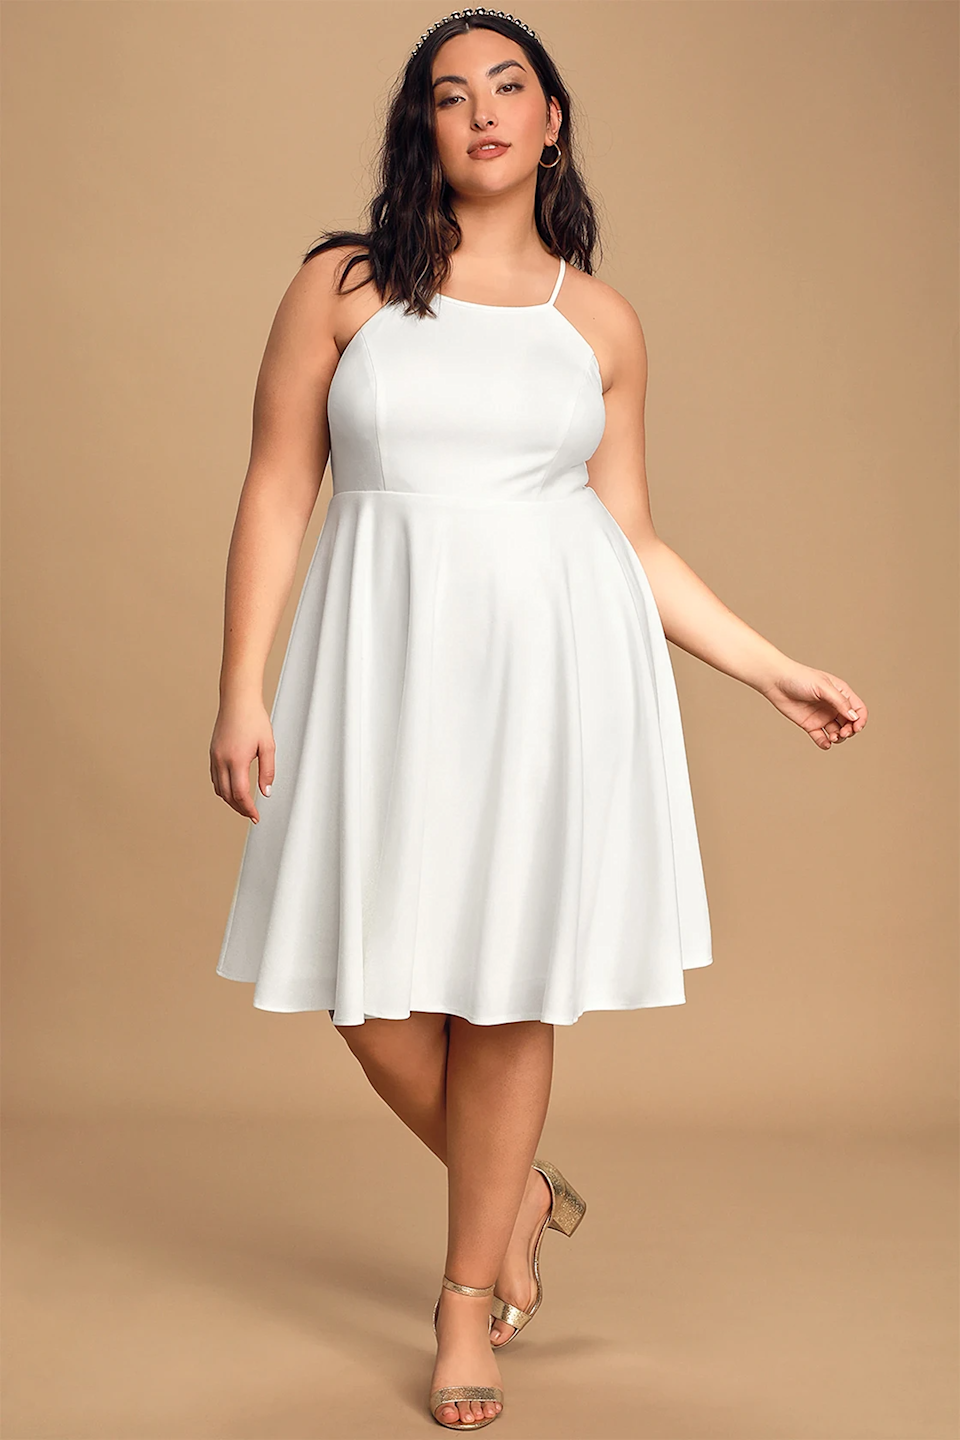 """<h2>Lulus Irresistible Charm White Midi Dress</h2><br><strong><h3>Best Plus-Size Bride Wedding Rehearsal Dress </h3></strong><br><strong>Sizes Available: XXS-2X </strong> <br>This dress is simple, flowy, and white — which is to say, exactly what everyone wants in a rehearsal dinner get-up. Some plus-size reviewers cautioned that the top of the frock can be a bit tight on larger chests, but that the length and weight of the fabric are both on point.<br><br>""""A little tight up top, if you're a DD (like me), but everything else about the dress, is PERFECT. Nice length (hits me above the knee @ 5'11"""") and has a nice weight to it so in the wind the dress won't fly up. Have a great feeling this dress will be my go-to, as I've already dressed it up and down!"""" <em>–Katice J., Size 3X</em><br><br><em>Shop </em><strong><em><a href=""""https://www.lulus.com/products/irresistible-charm-white-midi-dress/607602.html"""" rel=""""nofollow noopener"""" target=""""_blank"""" data-ylk=""""slk:Lulus"""" class=""""link rapid-noclick-resp"""">Lulus</a></em></strong><br><br><strong>Lulus</strong> Irresistible Charm White Midi Dress, $, available at <a href=""""https://go.skimresources.com/?id=30283X879131&url=https%3A%2F%2Fwww.lulus.com%2Fproducts%2Firresistible-charm-white-midi-dress%2F607602.html"""" rel=""""nofollow noopener"""" target=""""_blank"""" data-ylk=""""slk:Lulus"""" class=""""link rapid-noclick-resp"""">Lulus</a>"""